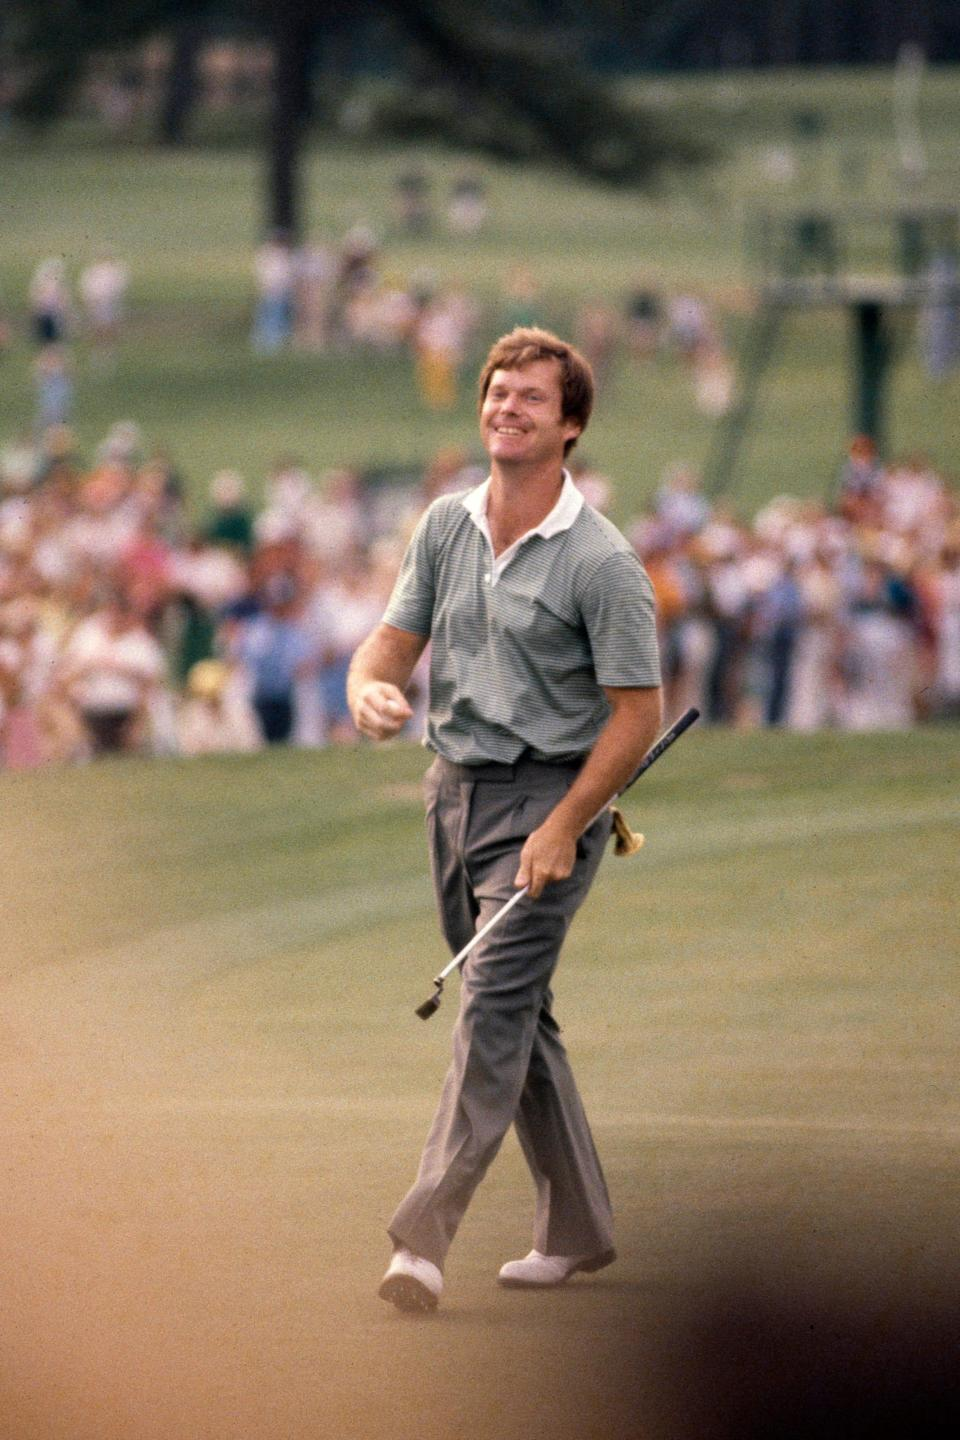 Tom Watson reacts to his putt during the final round of the 1981 Masters.